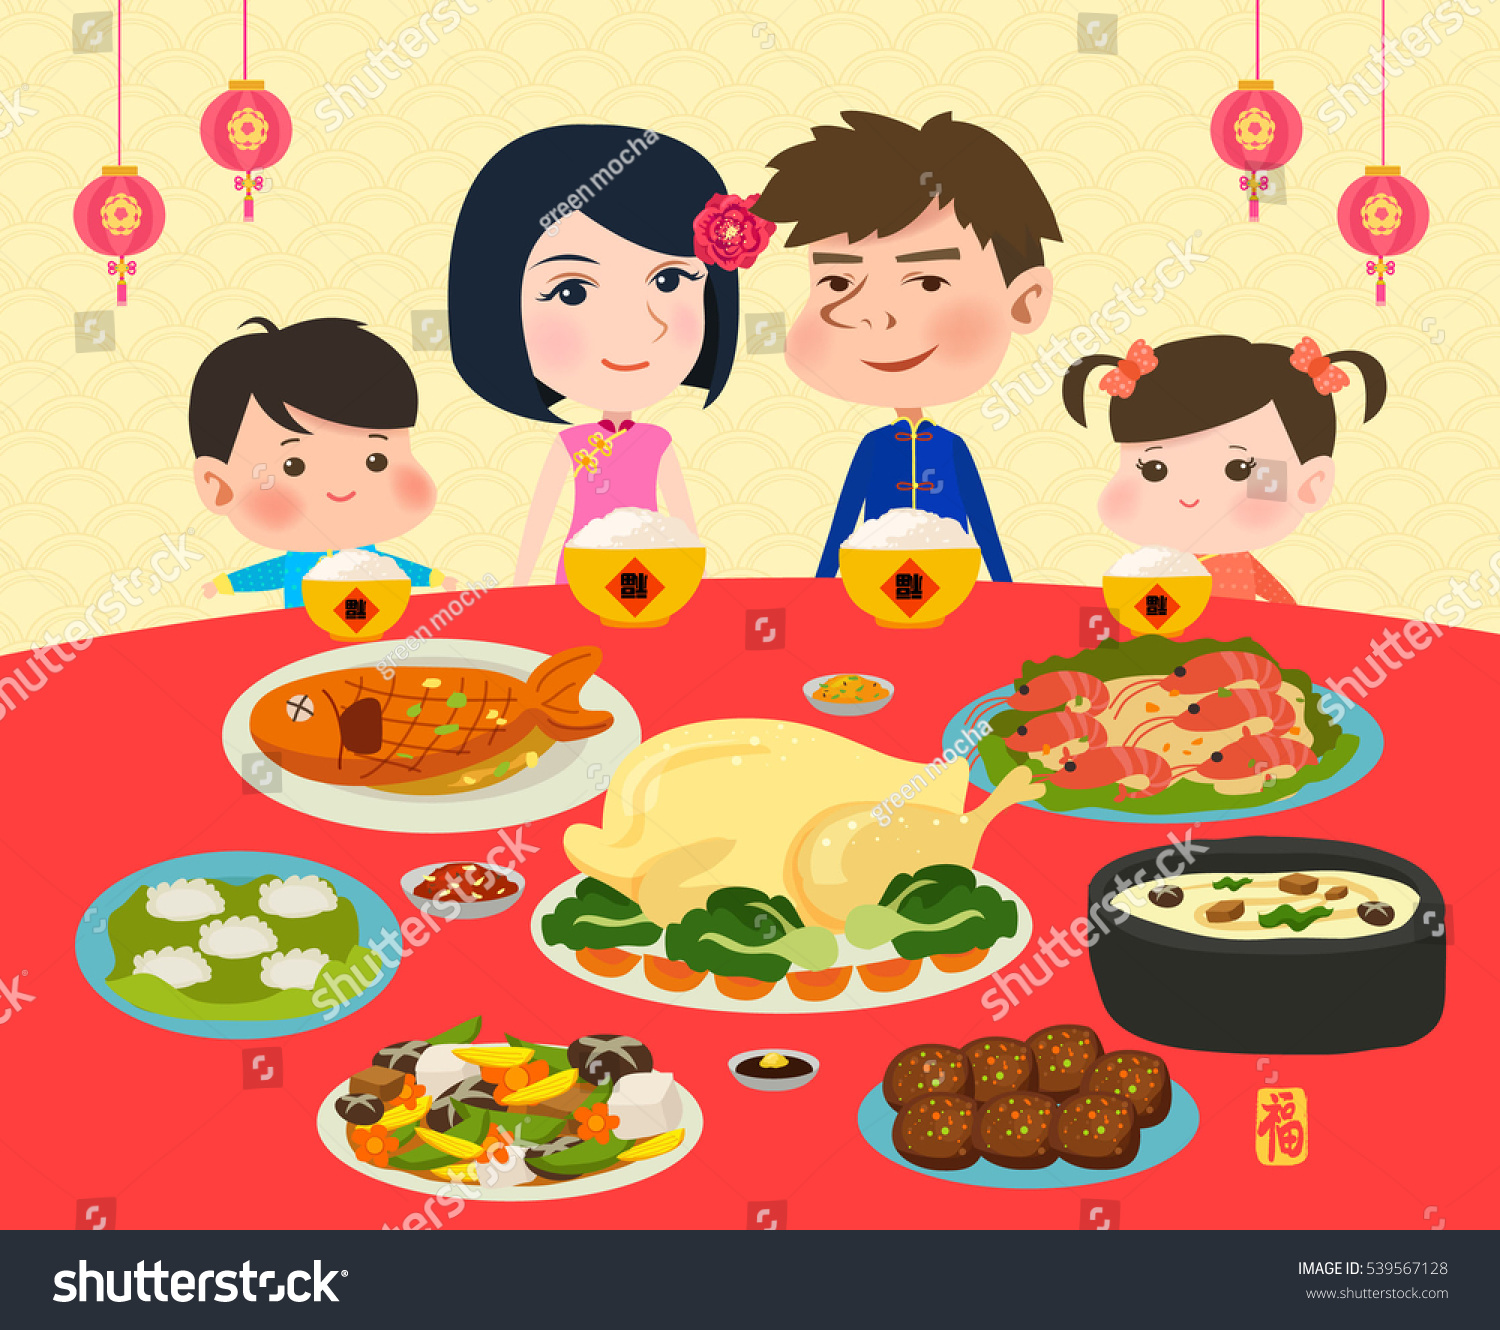 Happy Chinese New Year Reunion Dinner Stock Vector